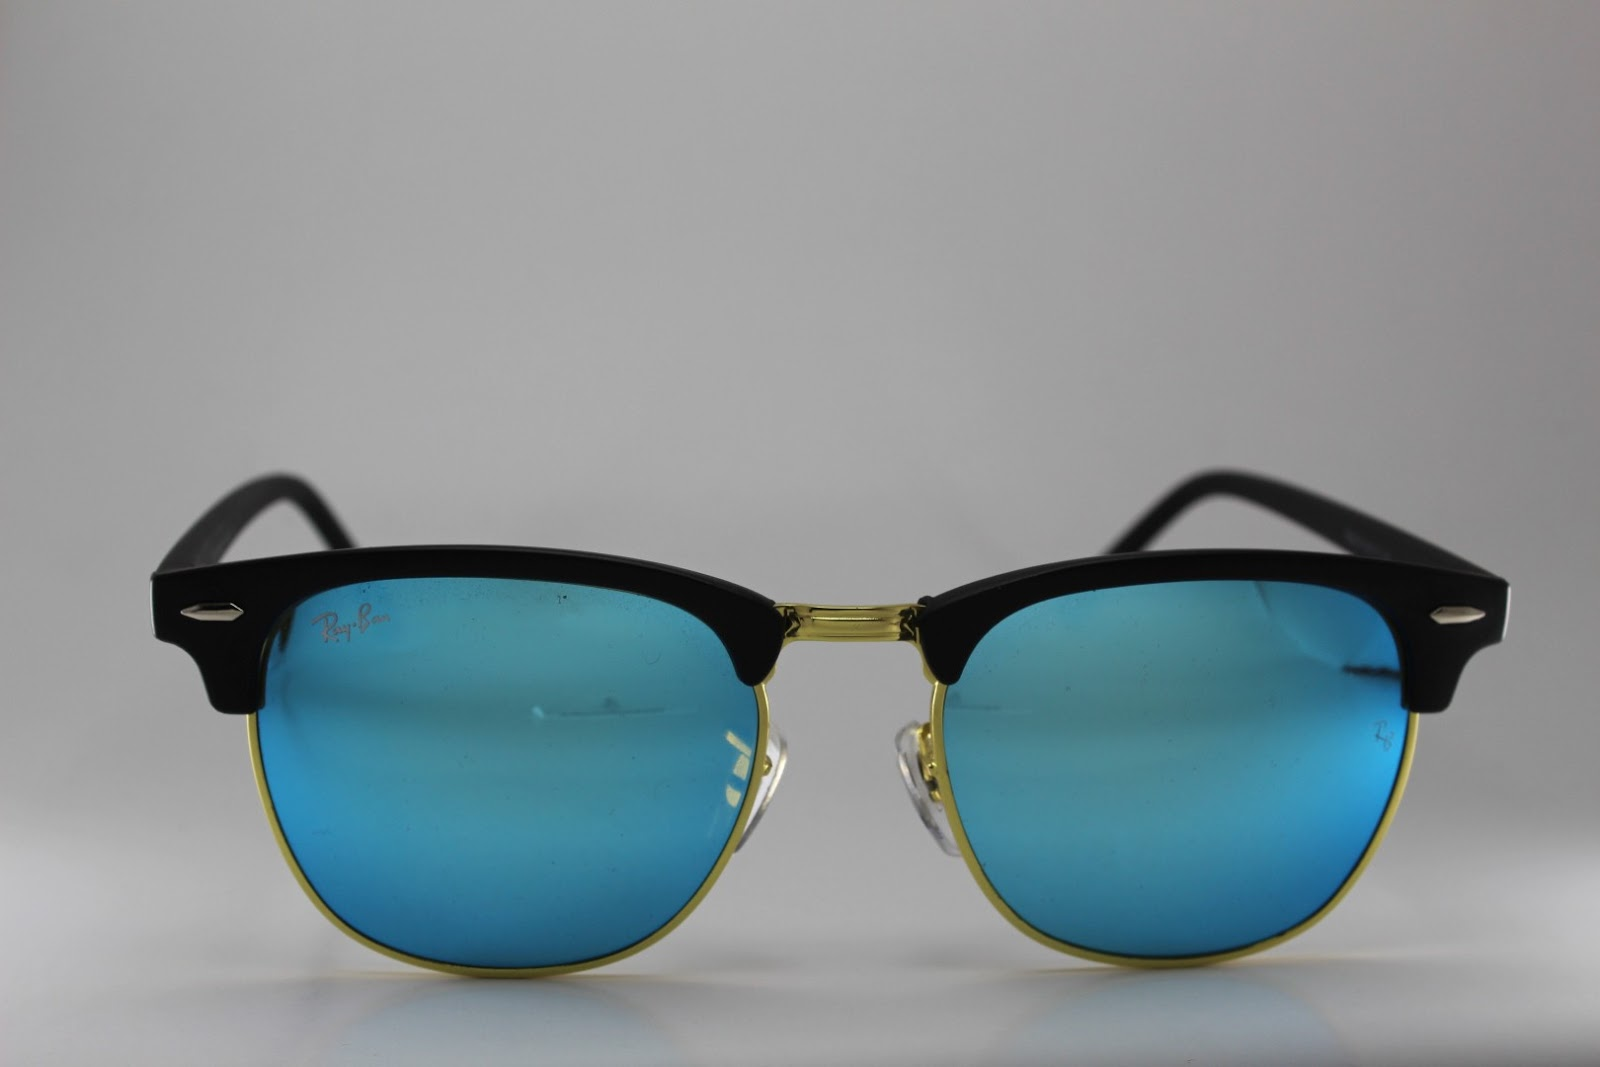 2a74dc9cc6f Ray Ban Mirrored Clubmaster Sunglasses « One More Soul